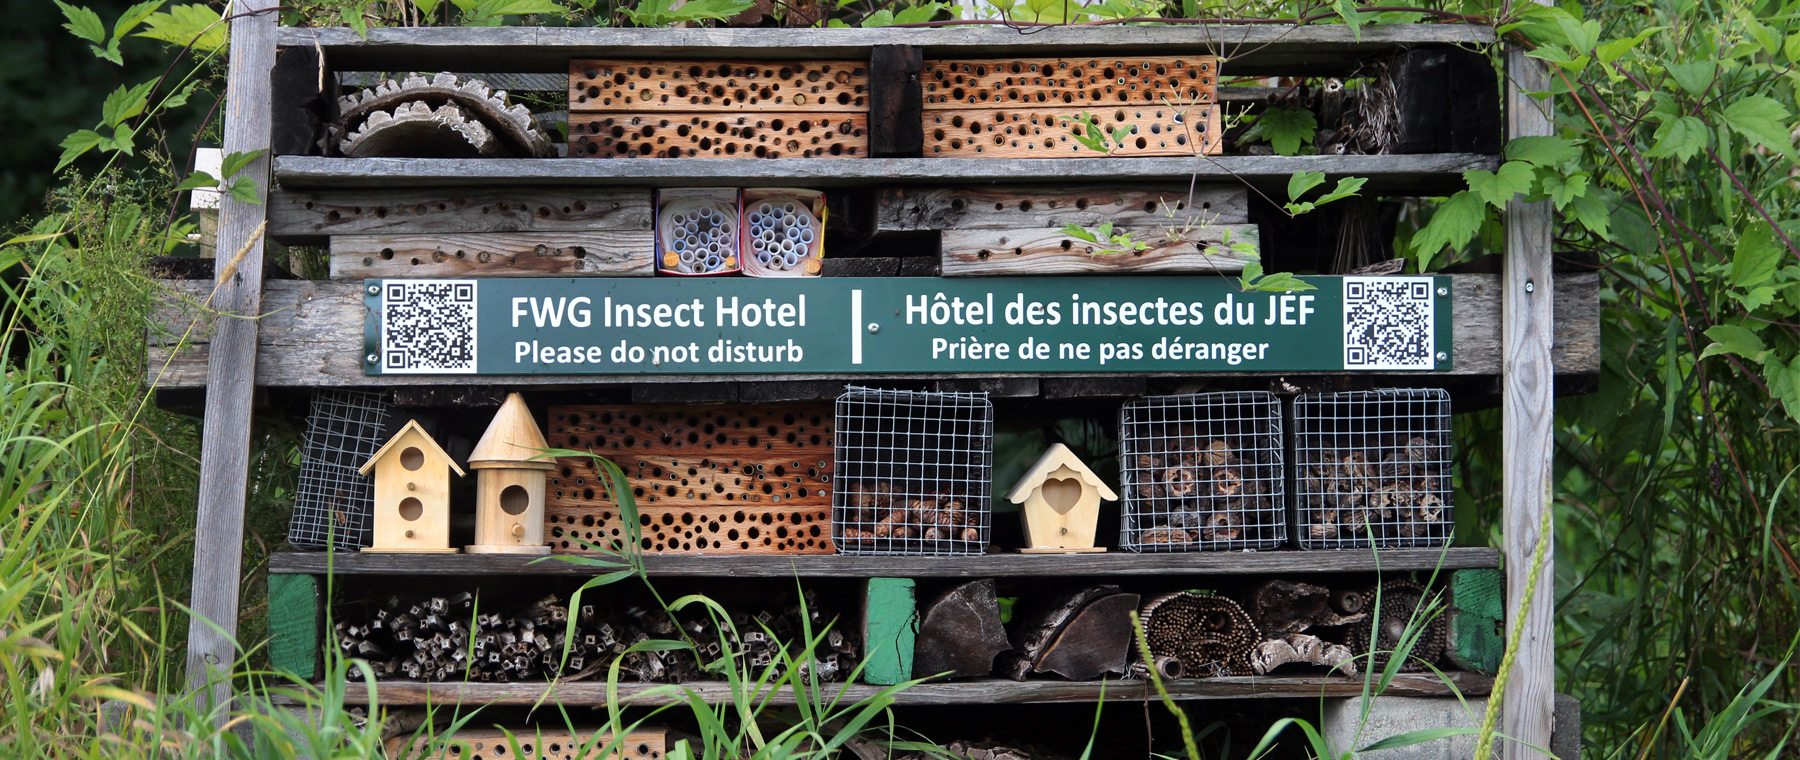 Insect Hotel — No fresh towels, but plenty of wasps